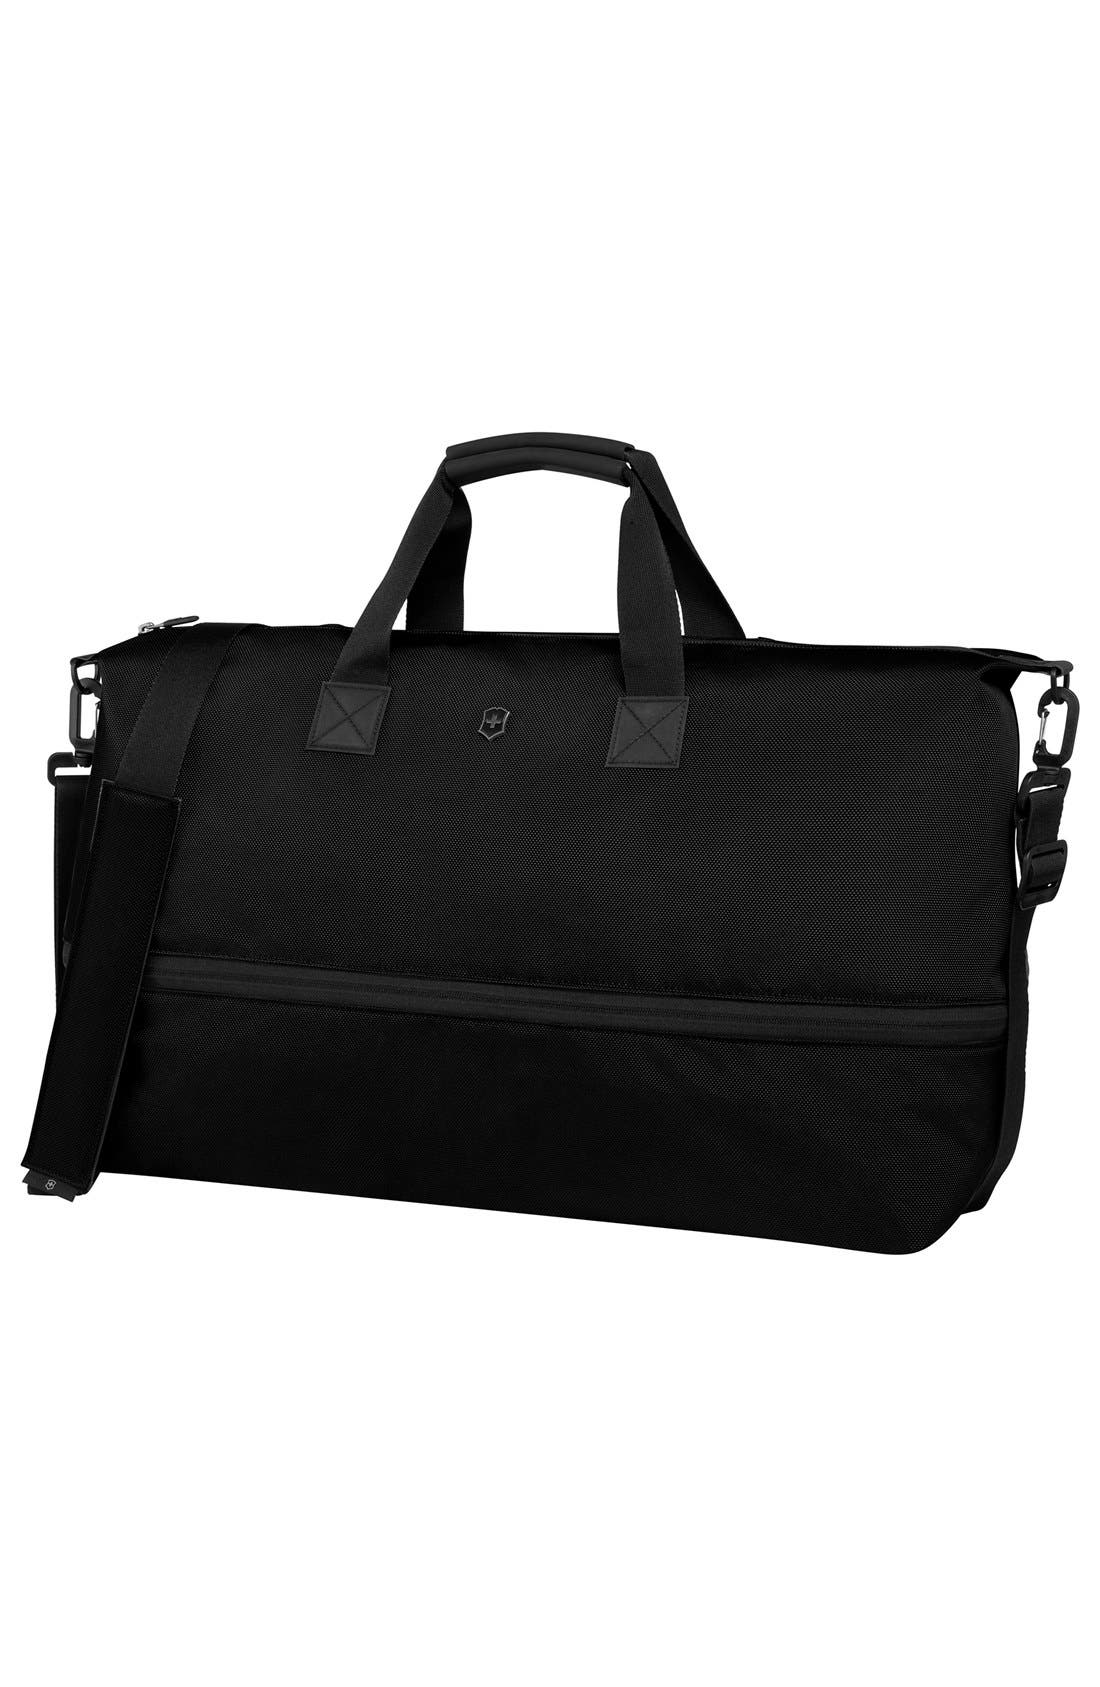 XL Duffel Bag,                         Main,                         color, Black